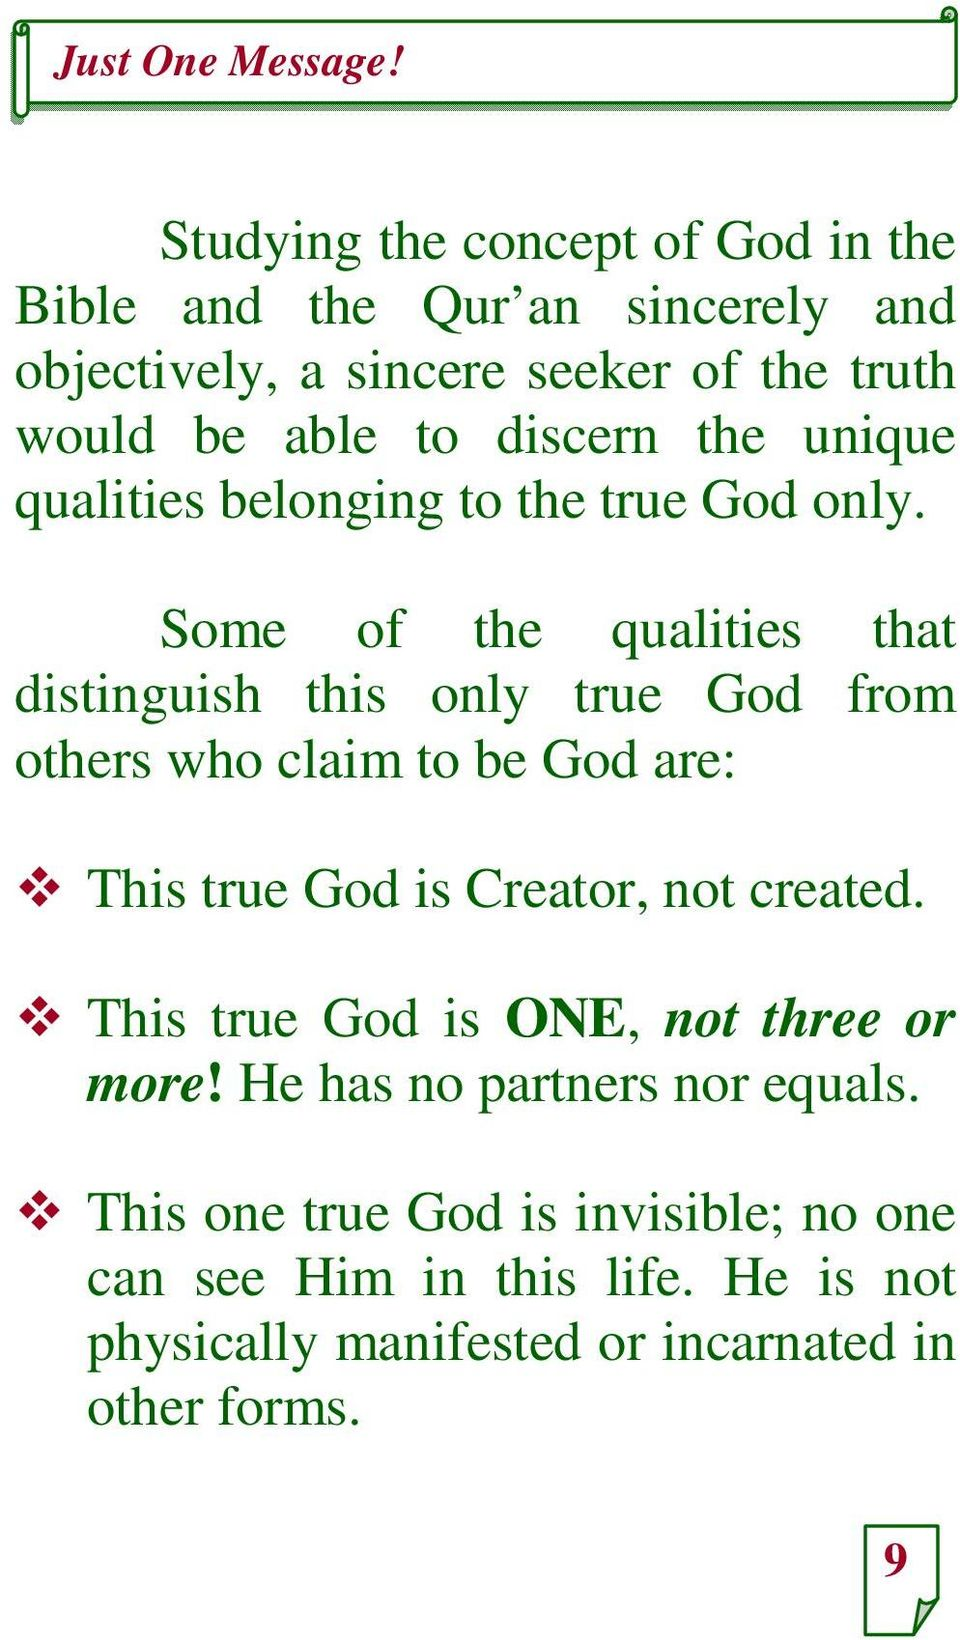 Some of the qualities that distinguish this only true God from others who claim to be God are: This true God is Creator, not